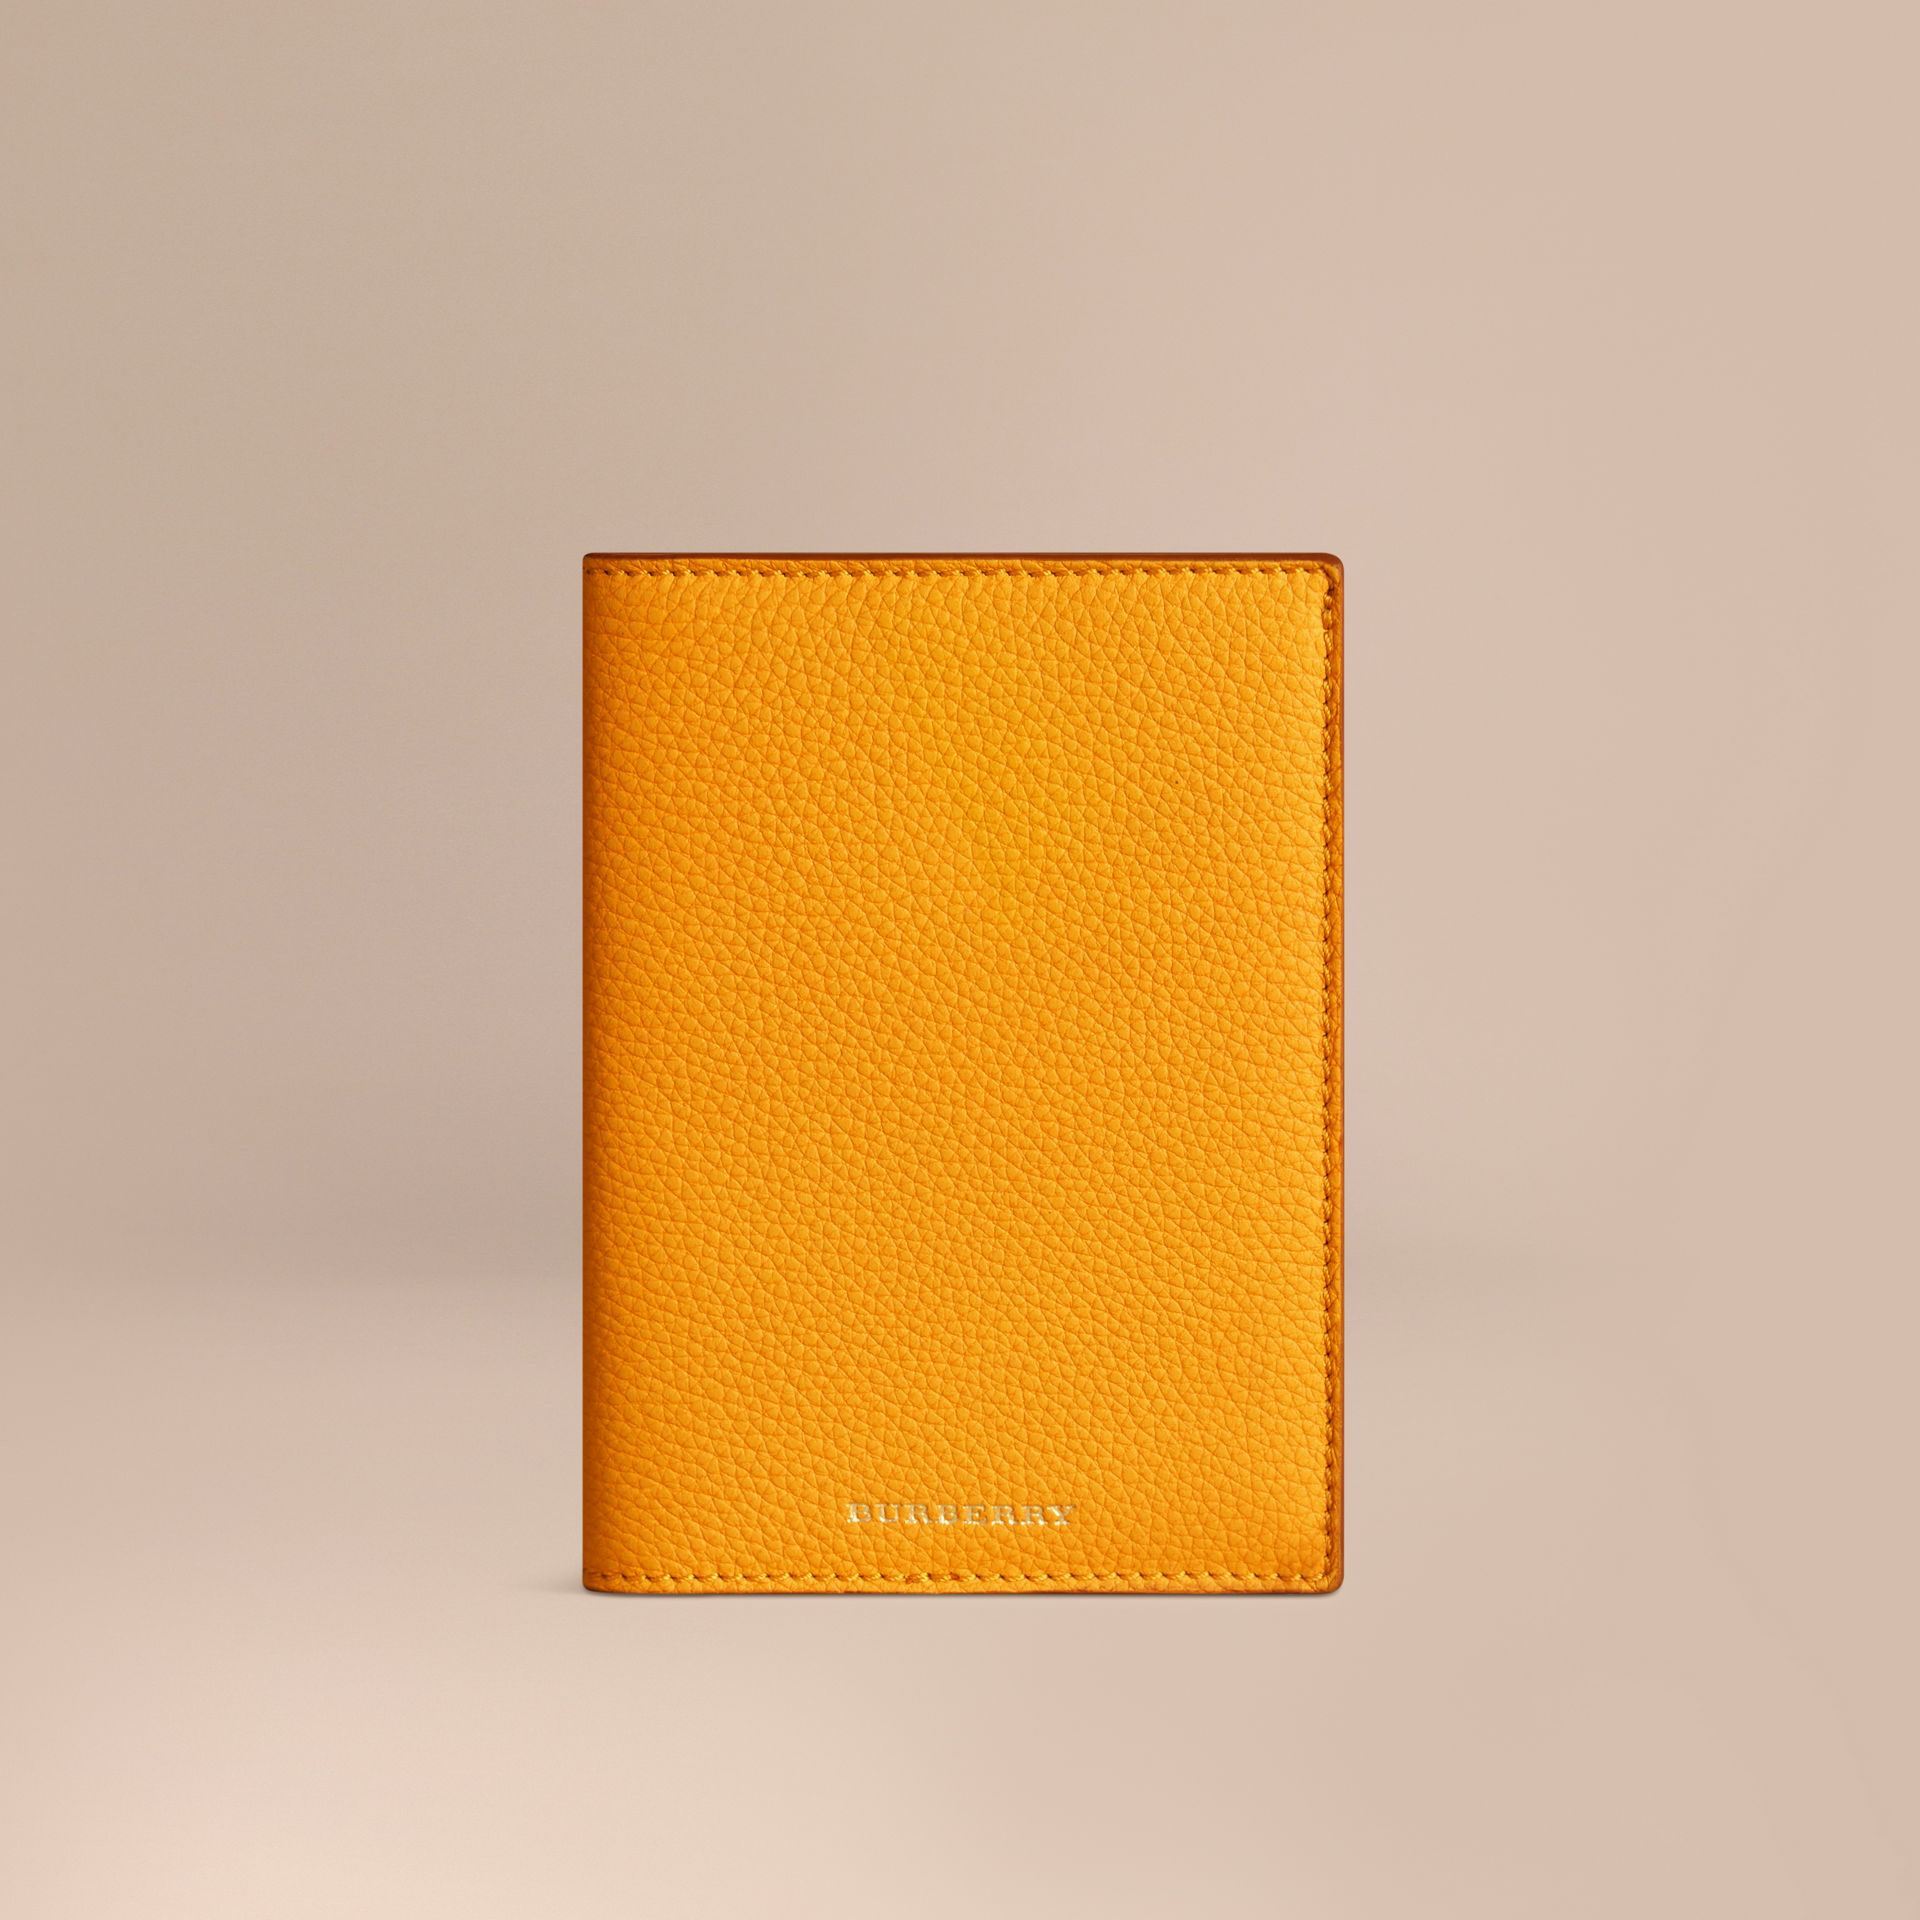 Grainy Leather Passport Cover in Ochre Yellow | Burberry - gallery image 1